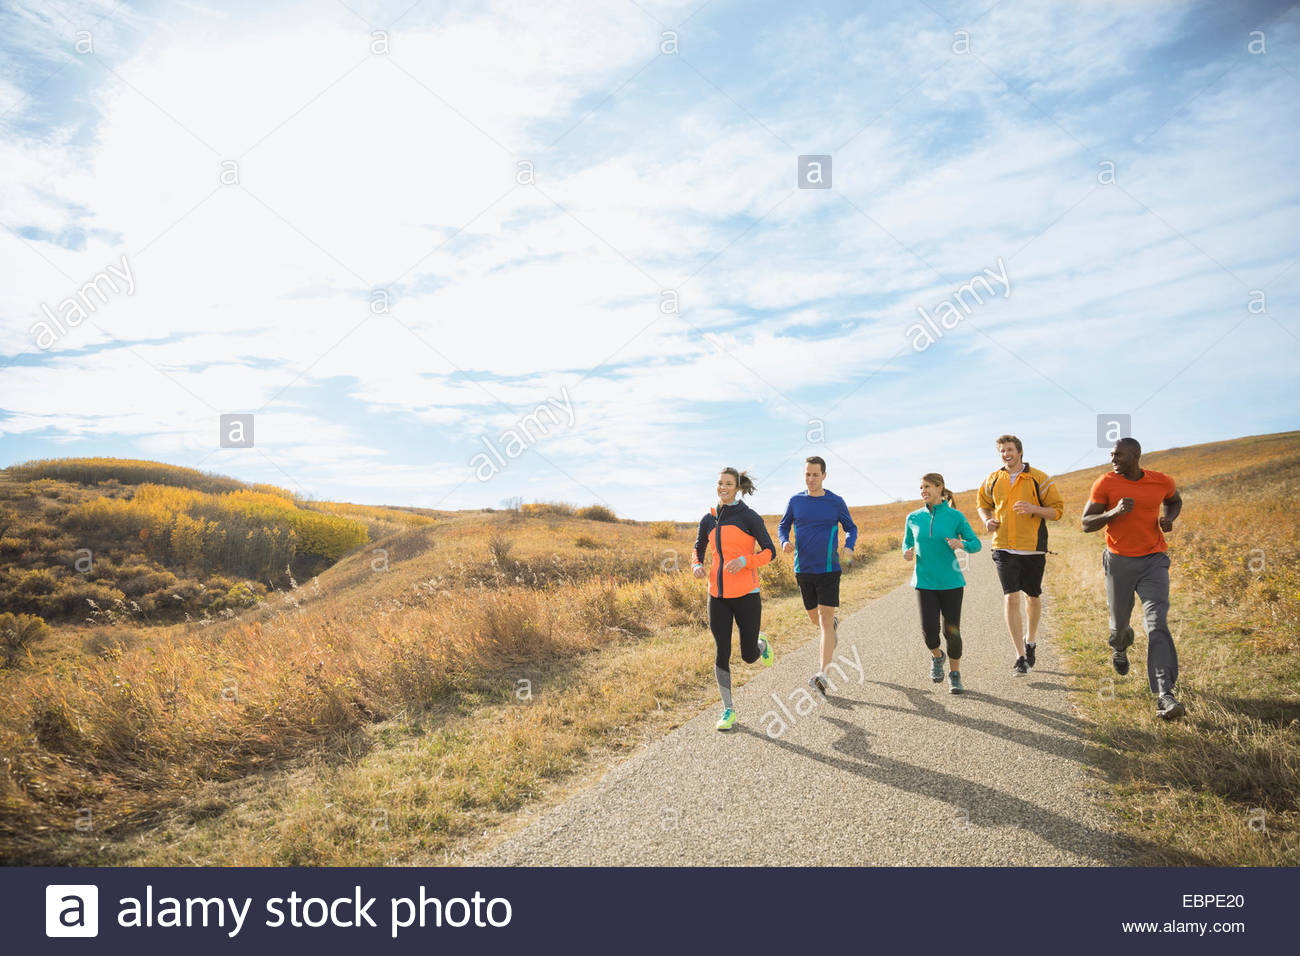 Runners on sunny rural path - Stock Image